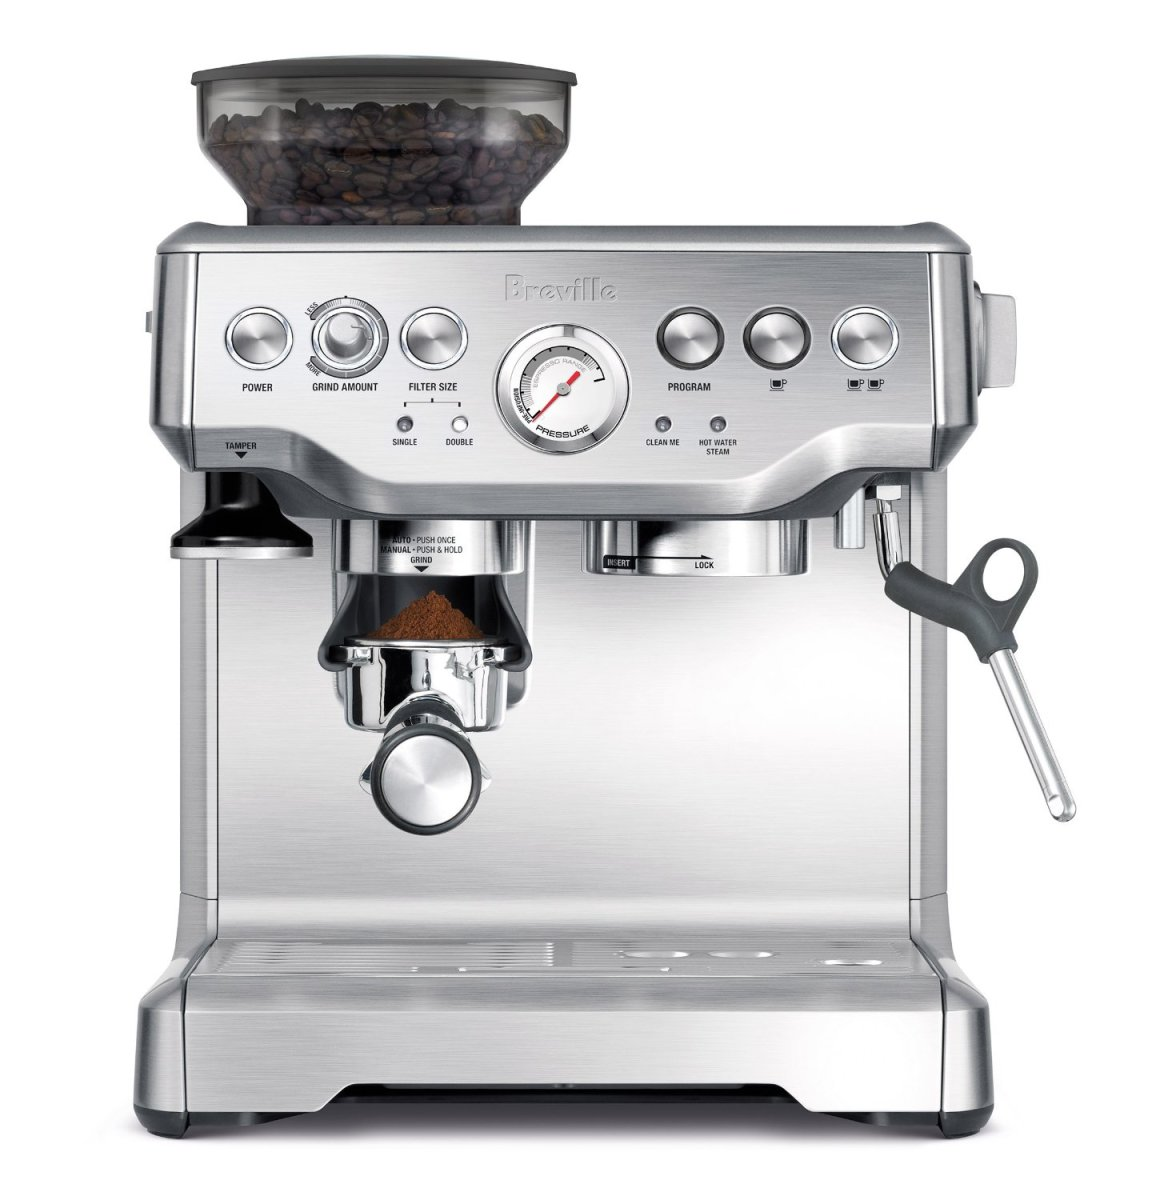 The Breville Barista Express Espresso Machine. Constructed from stainless steel, it's easy to clean, attractive, solid and durable.  It's not the cheapest grind and brew espresso machine out there, but worth every penny in my opinion and experience.